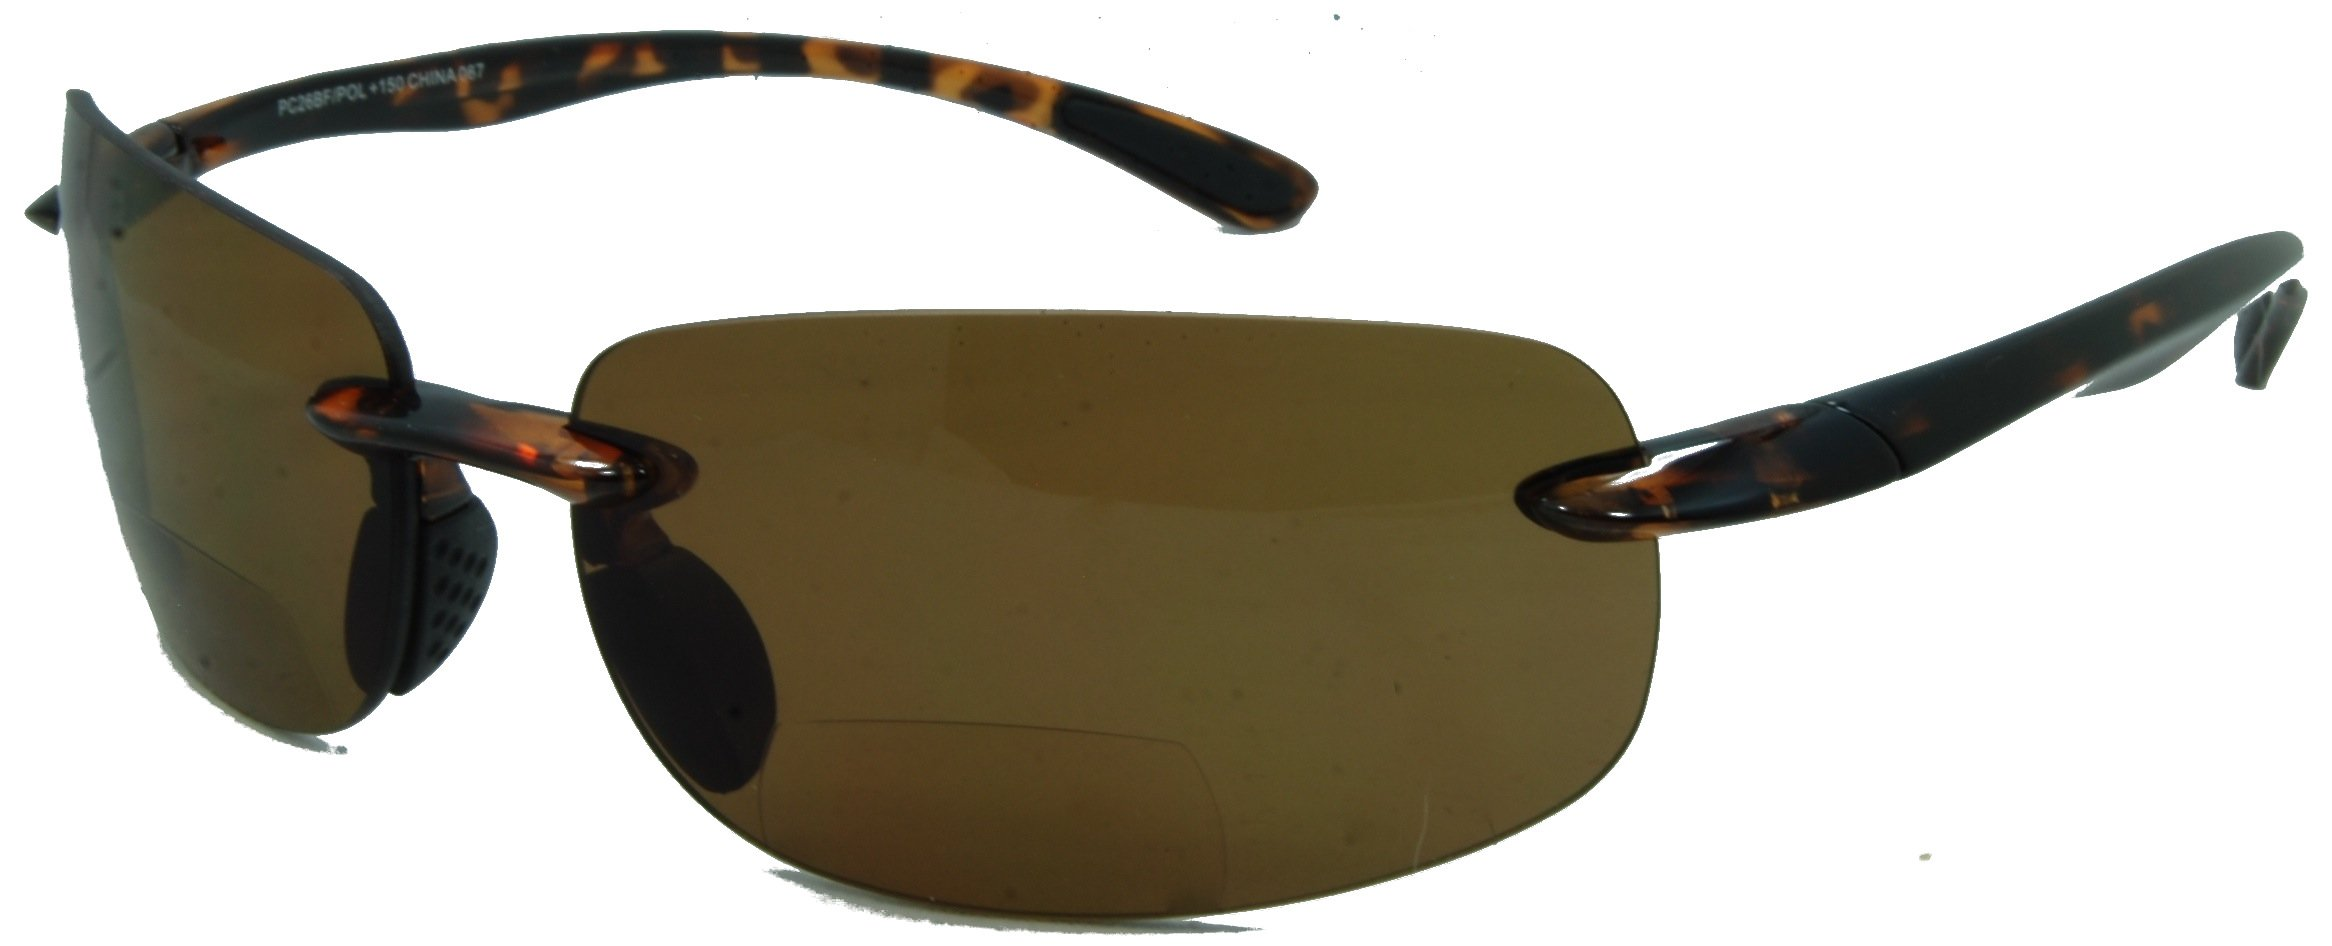 In style eyes lovin maui wrap polarized nearly invisible for Bifocal fishing sunglasses